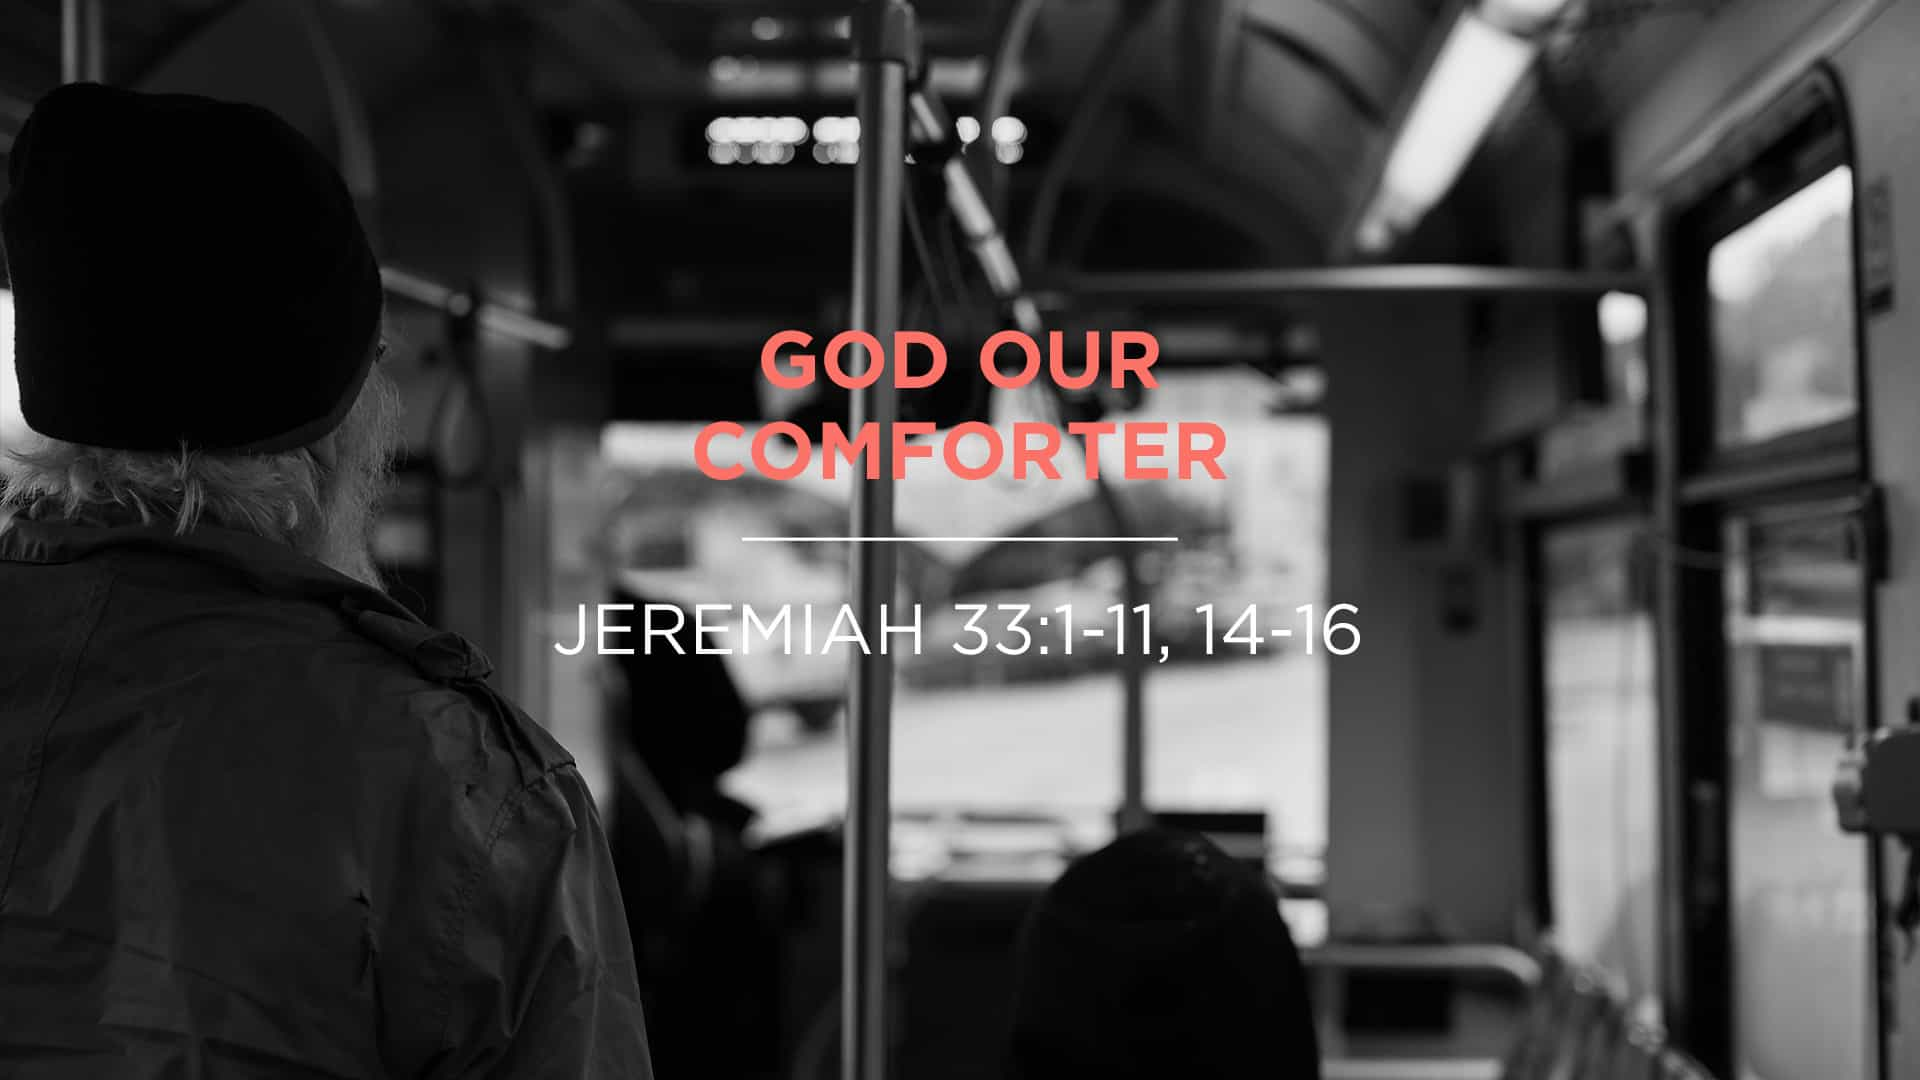 God Our Comforter